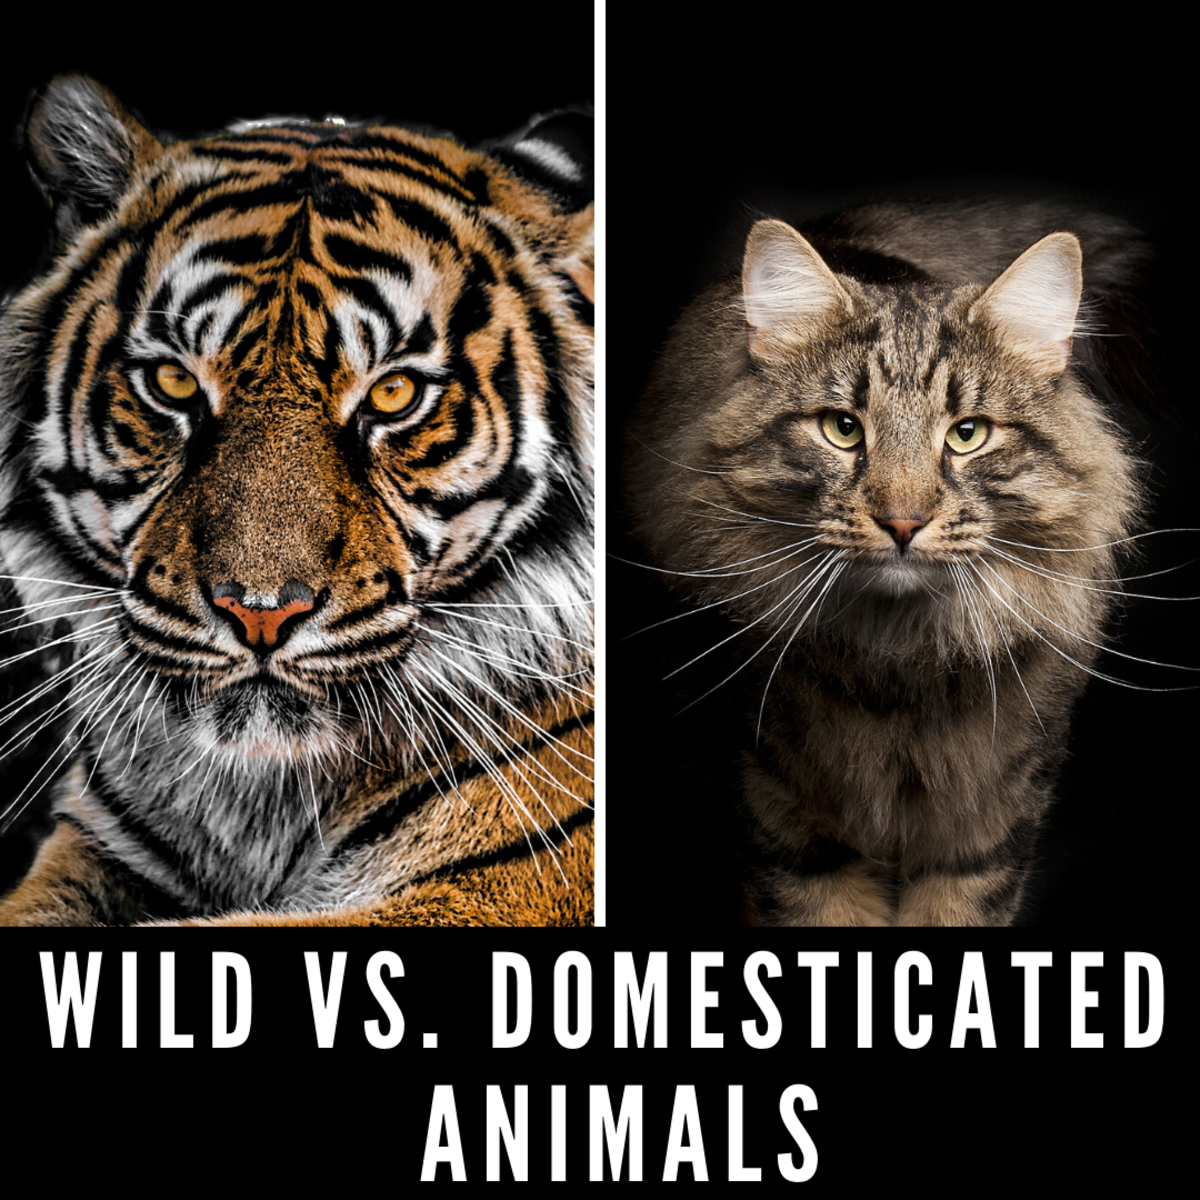 Wild vs. Domesticated Animals: Why Domestication Has Nothing to Do With How Dangerous Pets Are